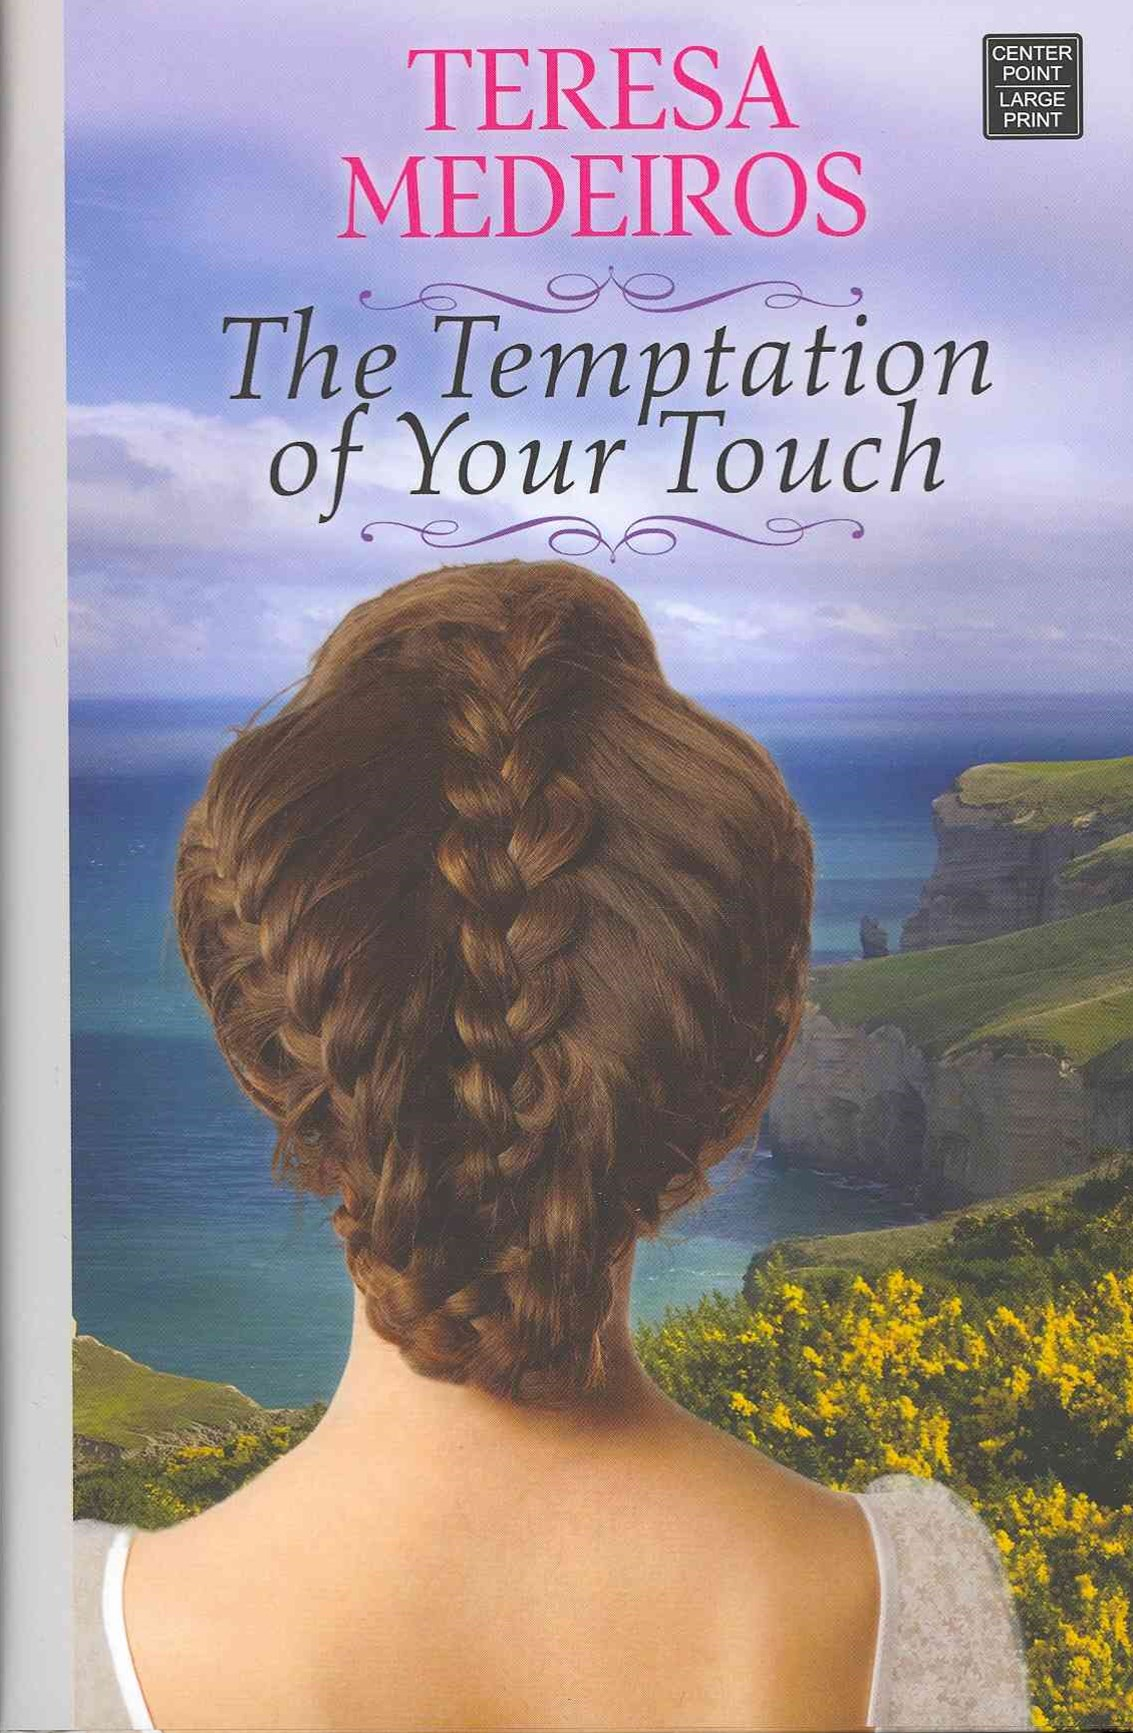 The Temptation of Your Touch